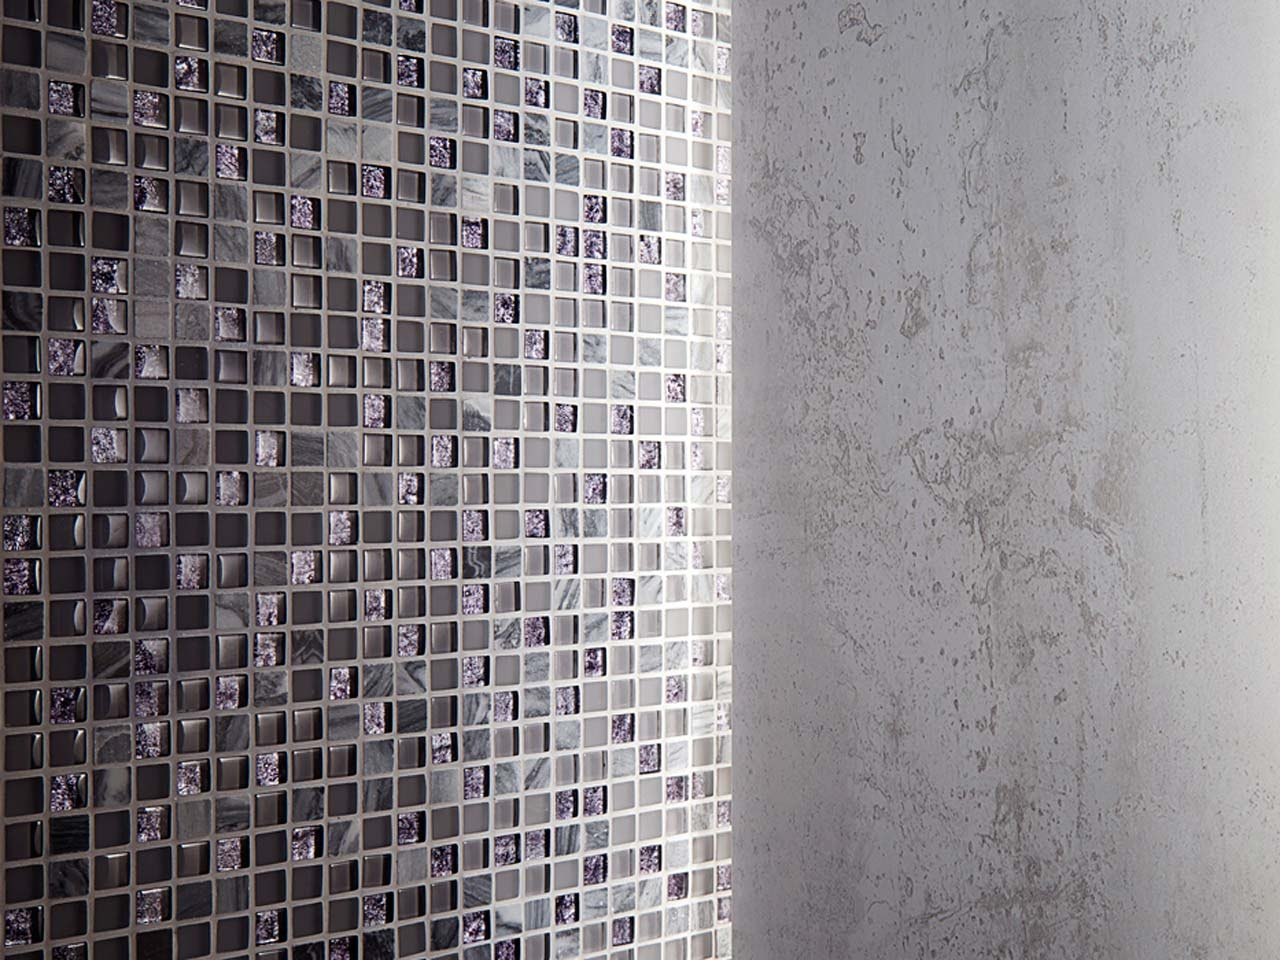 Ceramic tiles industry in spain ceramic tiles mosaics with recycled content translucent glass and even real gold also collections that combine natural stone tiles glass and ceramic material dailygadgetfo Choice Image